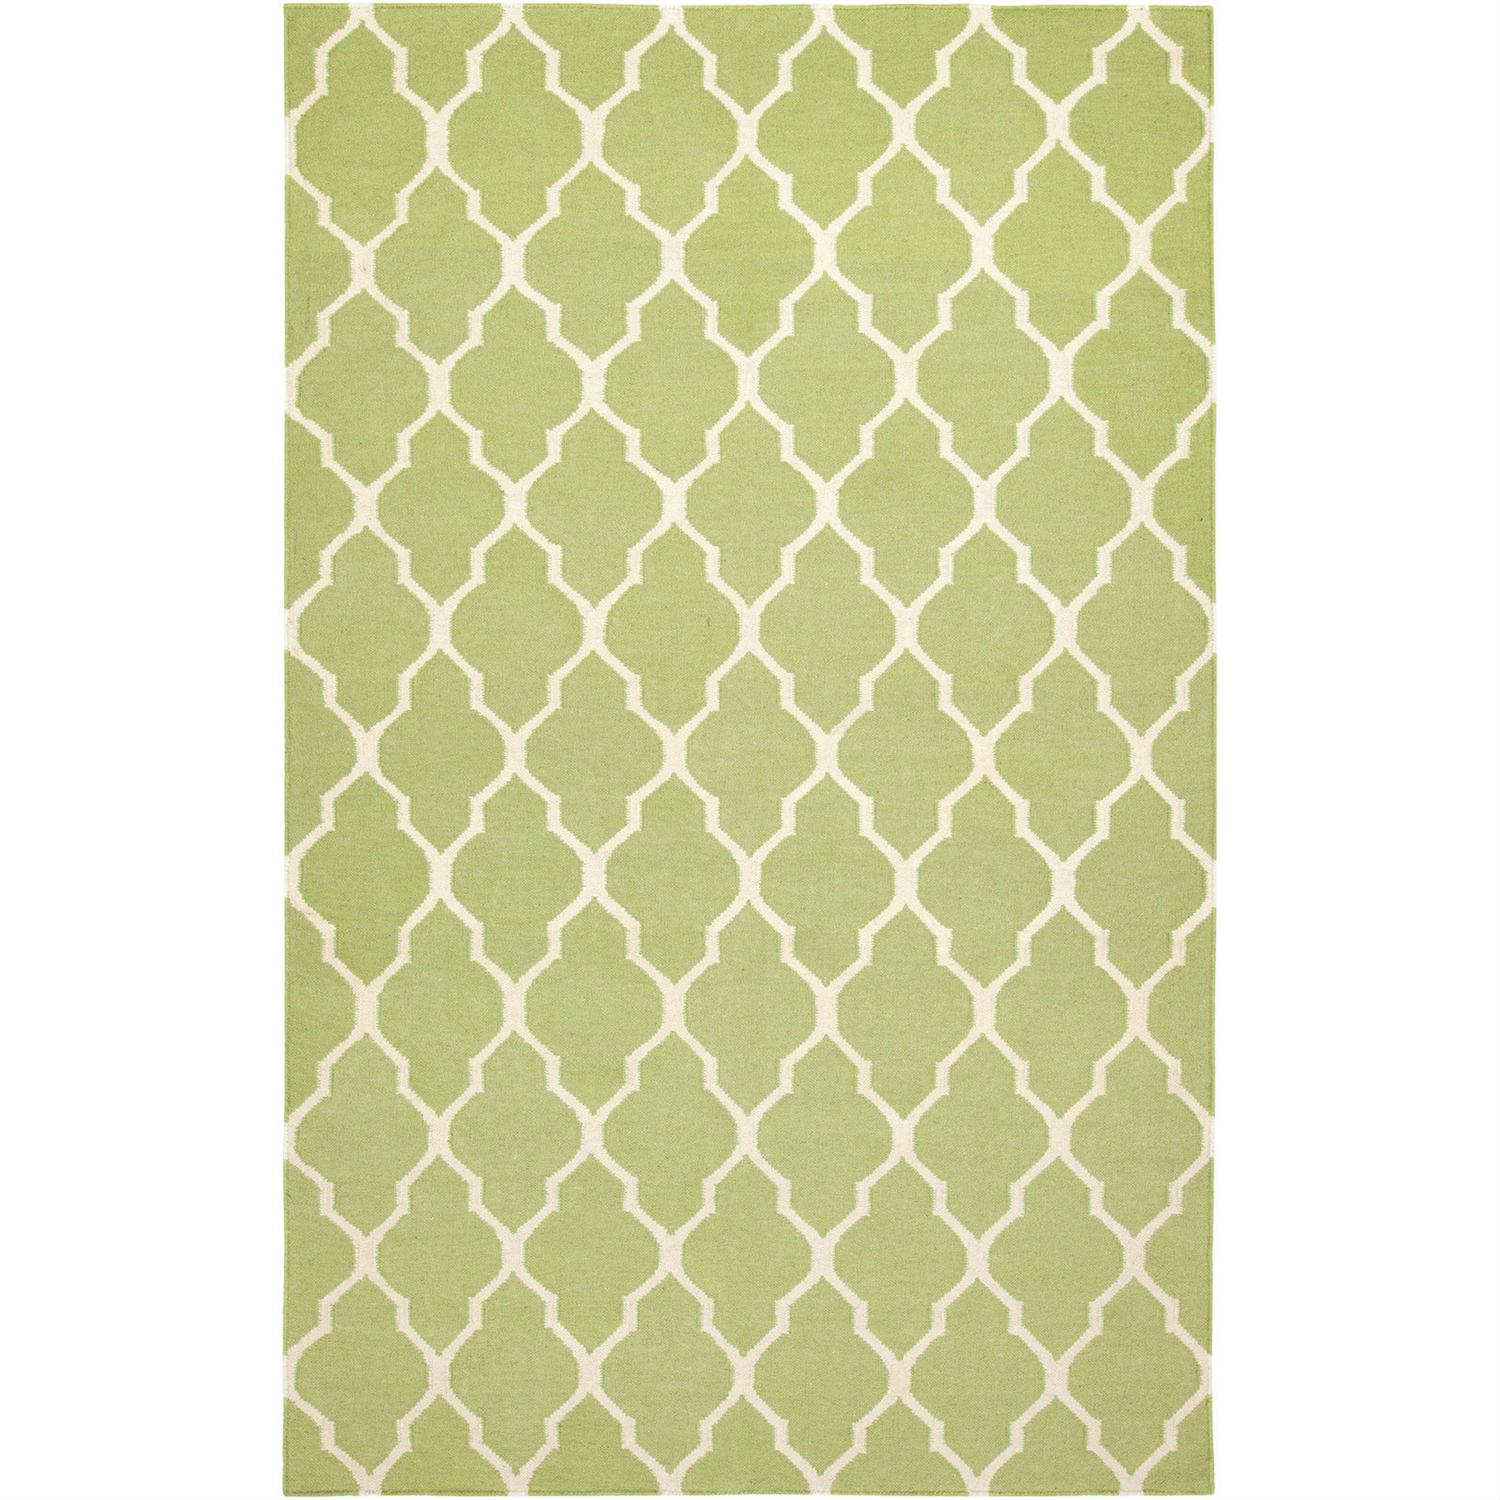 2' x 3' Light Green Lattice Area Rug in 100% New Zealand Wool, RSL5351 :  This 2' x 3' Light Green Lattice Area Rug in 100% New Zealand Wool would be a great addition to your home. Flat-woven rugs have been a favorite for centuries. Each dhurrie is hand-woven with 100% blended New Zealand wool to insure years of durability. Technique: Hand Woven; Primary Pattern: Geometric; Primary Color: Green; Material: Wool; Material Details: New Zealand Wool; Reversible: No; Rug Pad Needed: Yes; Outdoor Use: No; Product Care: Brush and shake off or sweep with broom, professional rug cleaning recommended; Country of Manufacture: India.